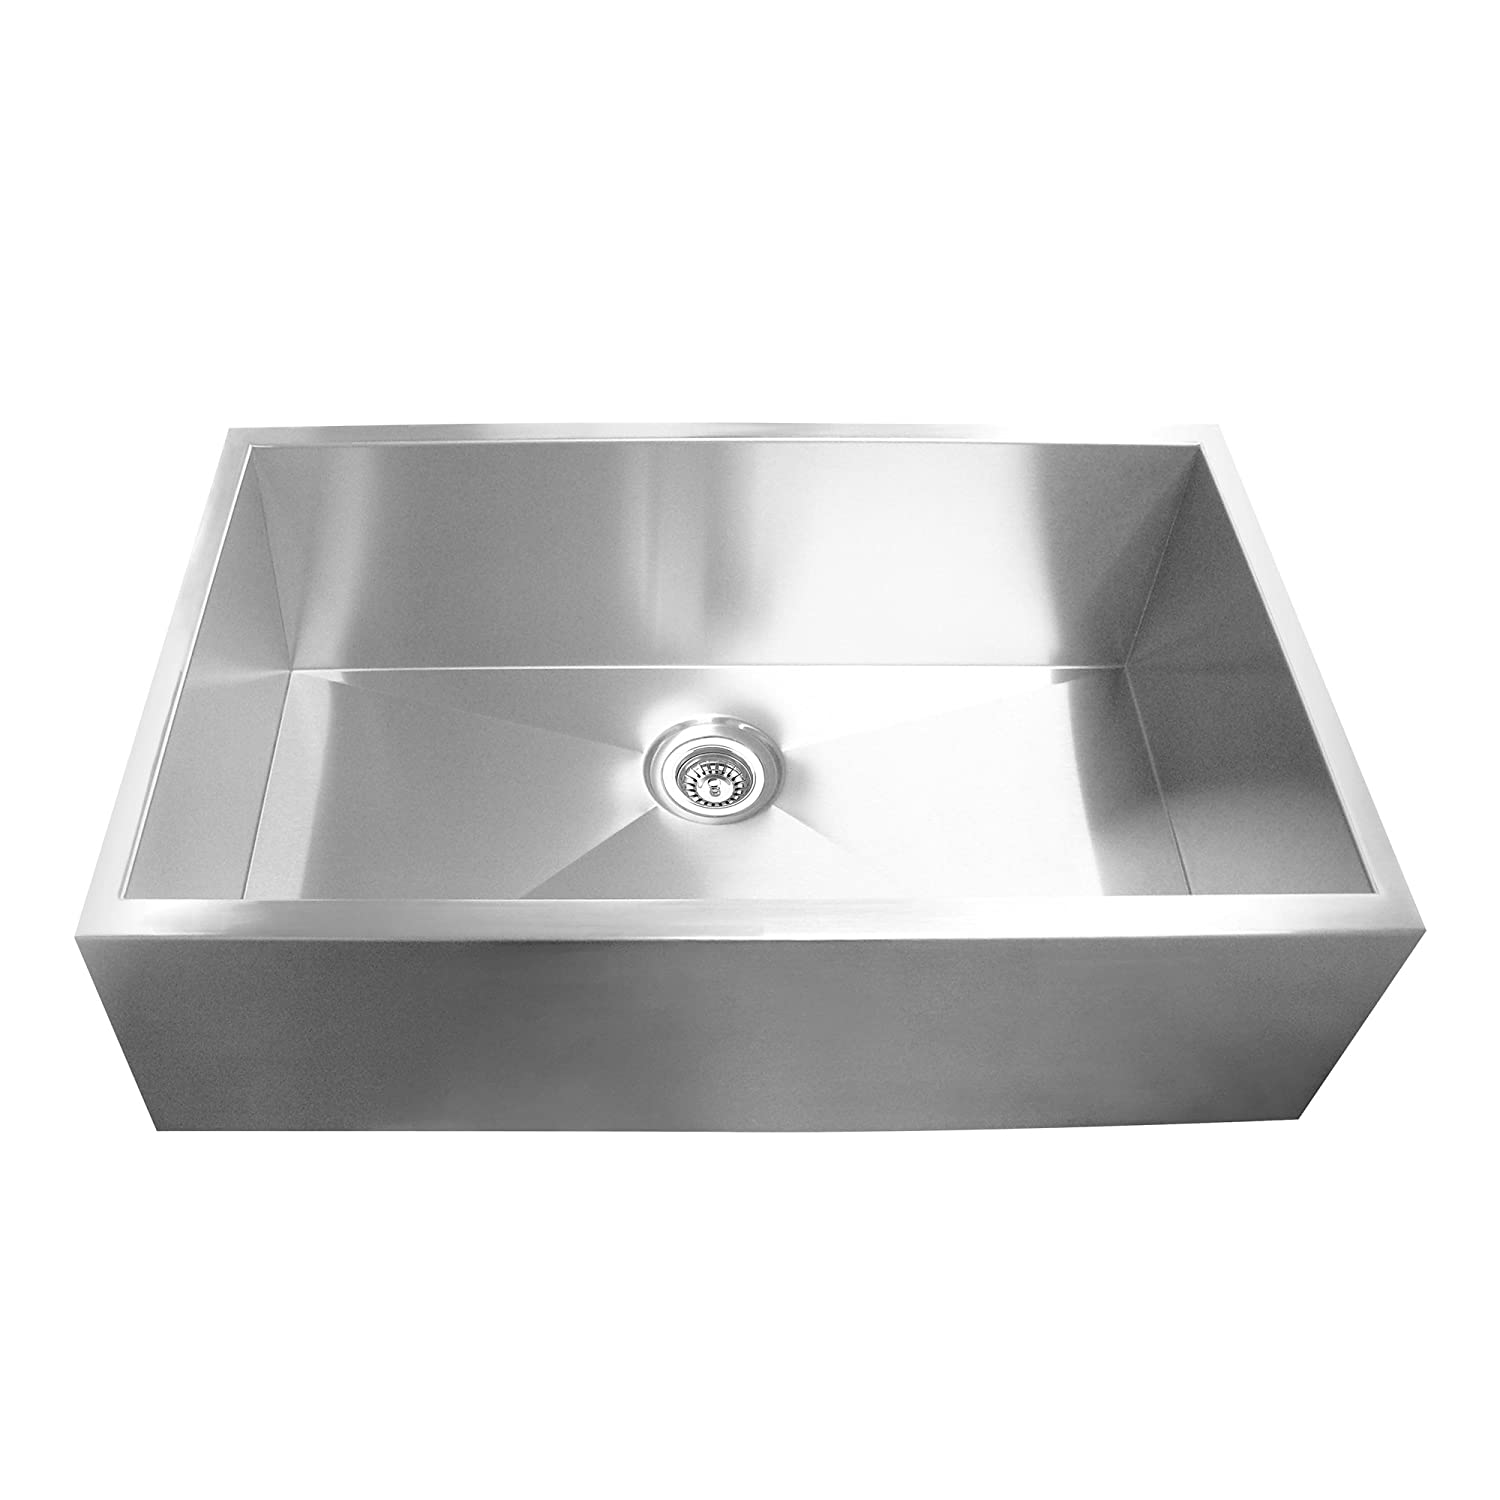 yosemite home decor mags3320sap 16gauge stainless steel farmhouse kitchen sink single bowl sinks amazoncom - Stainless Steel Farm Sink